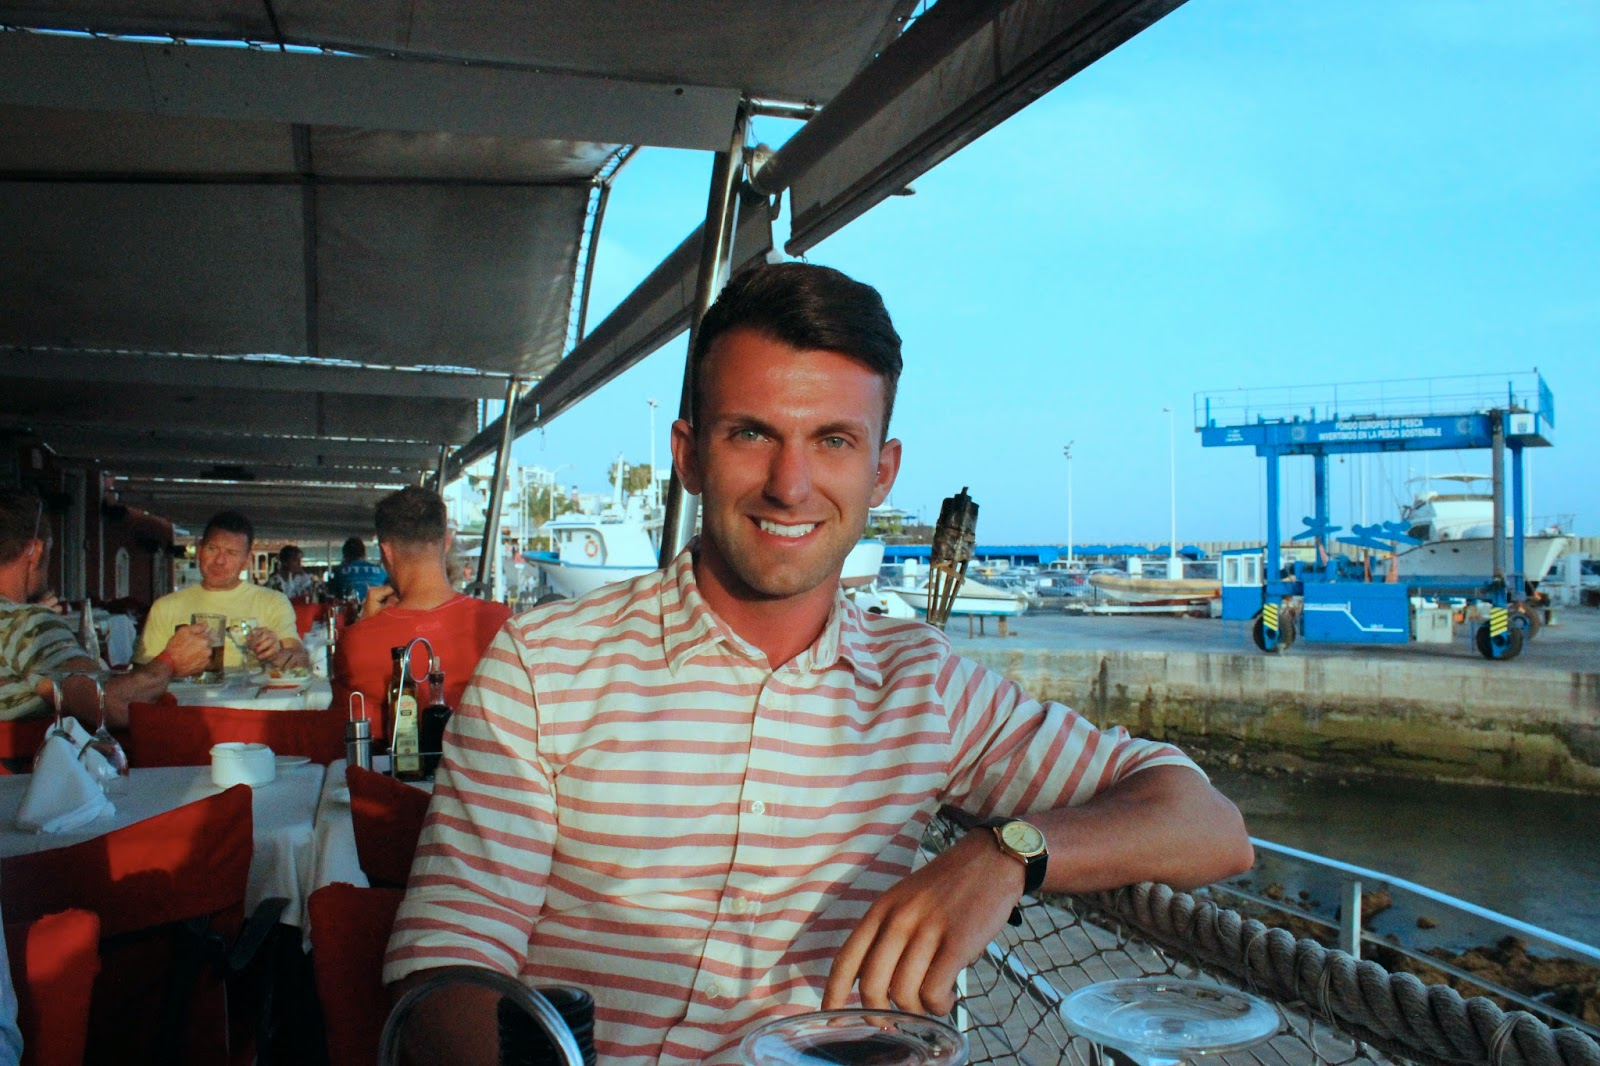 blog review, Blogger, canary island, Drinking, eating & drinking, evening dinner, family, Food, Food Review, Friends, holiday, ironman lanzarote, lanzarote, Male Blogger, spain, spanish food, fish, That Guy Luke, La Casa Roja